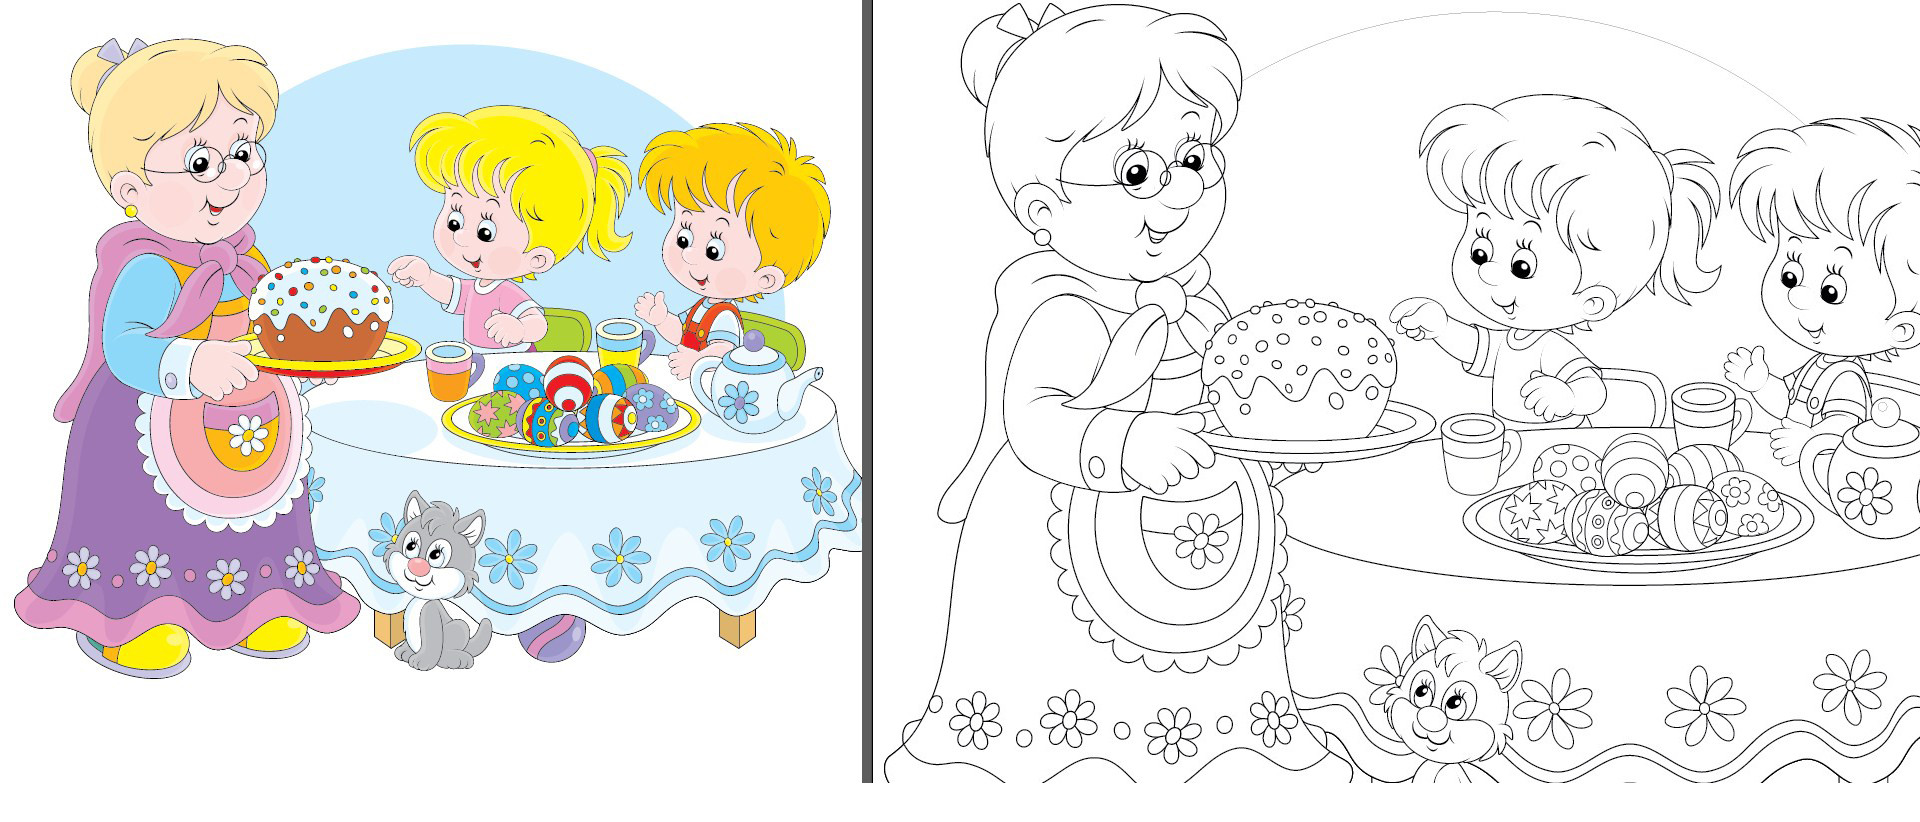 Converting A Colored Vector Eps To Coloring Page Single Line Art Graphic Design Stack Exchange